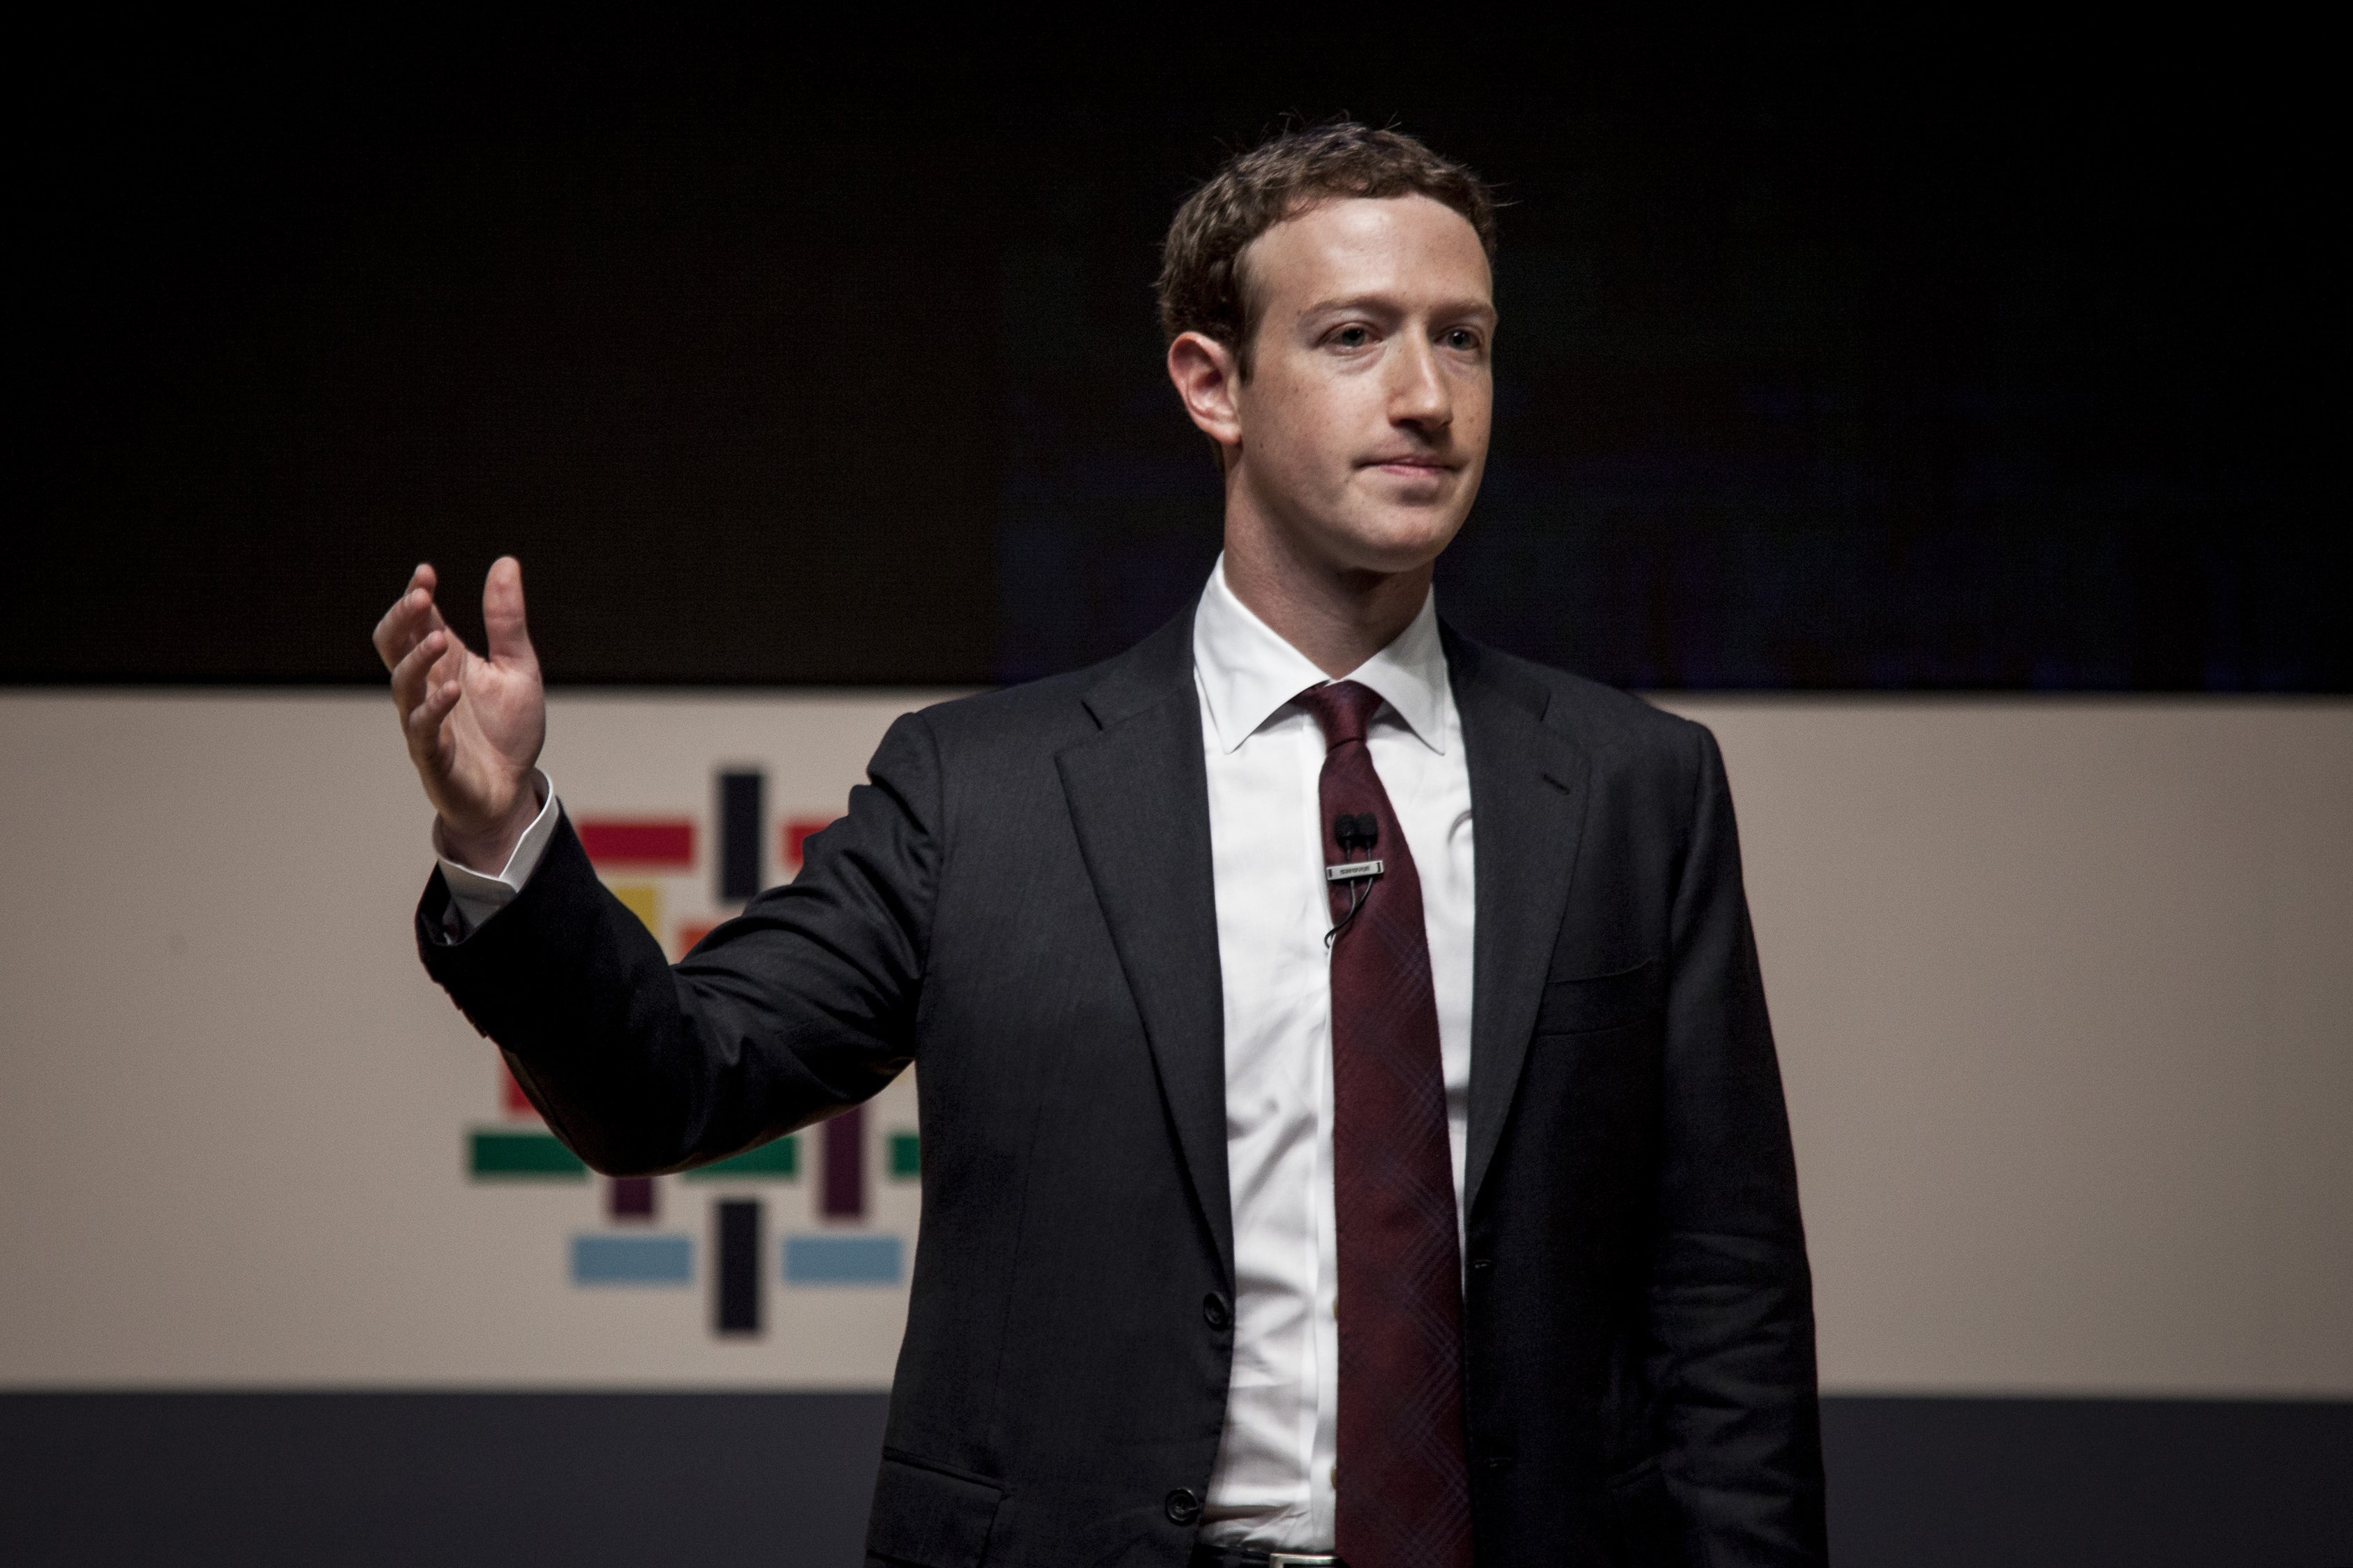 Mark Zuckerberg, founder and chief executive officer of Facebook Inc., speaks during the Asia-Pacific Economic Cooperation (APEC) 2016 CEO Summit in Lima, Peru, on Saturday, Nov. 19, 2016.